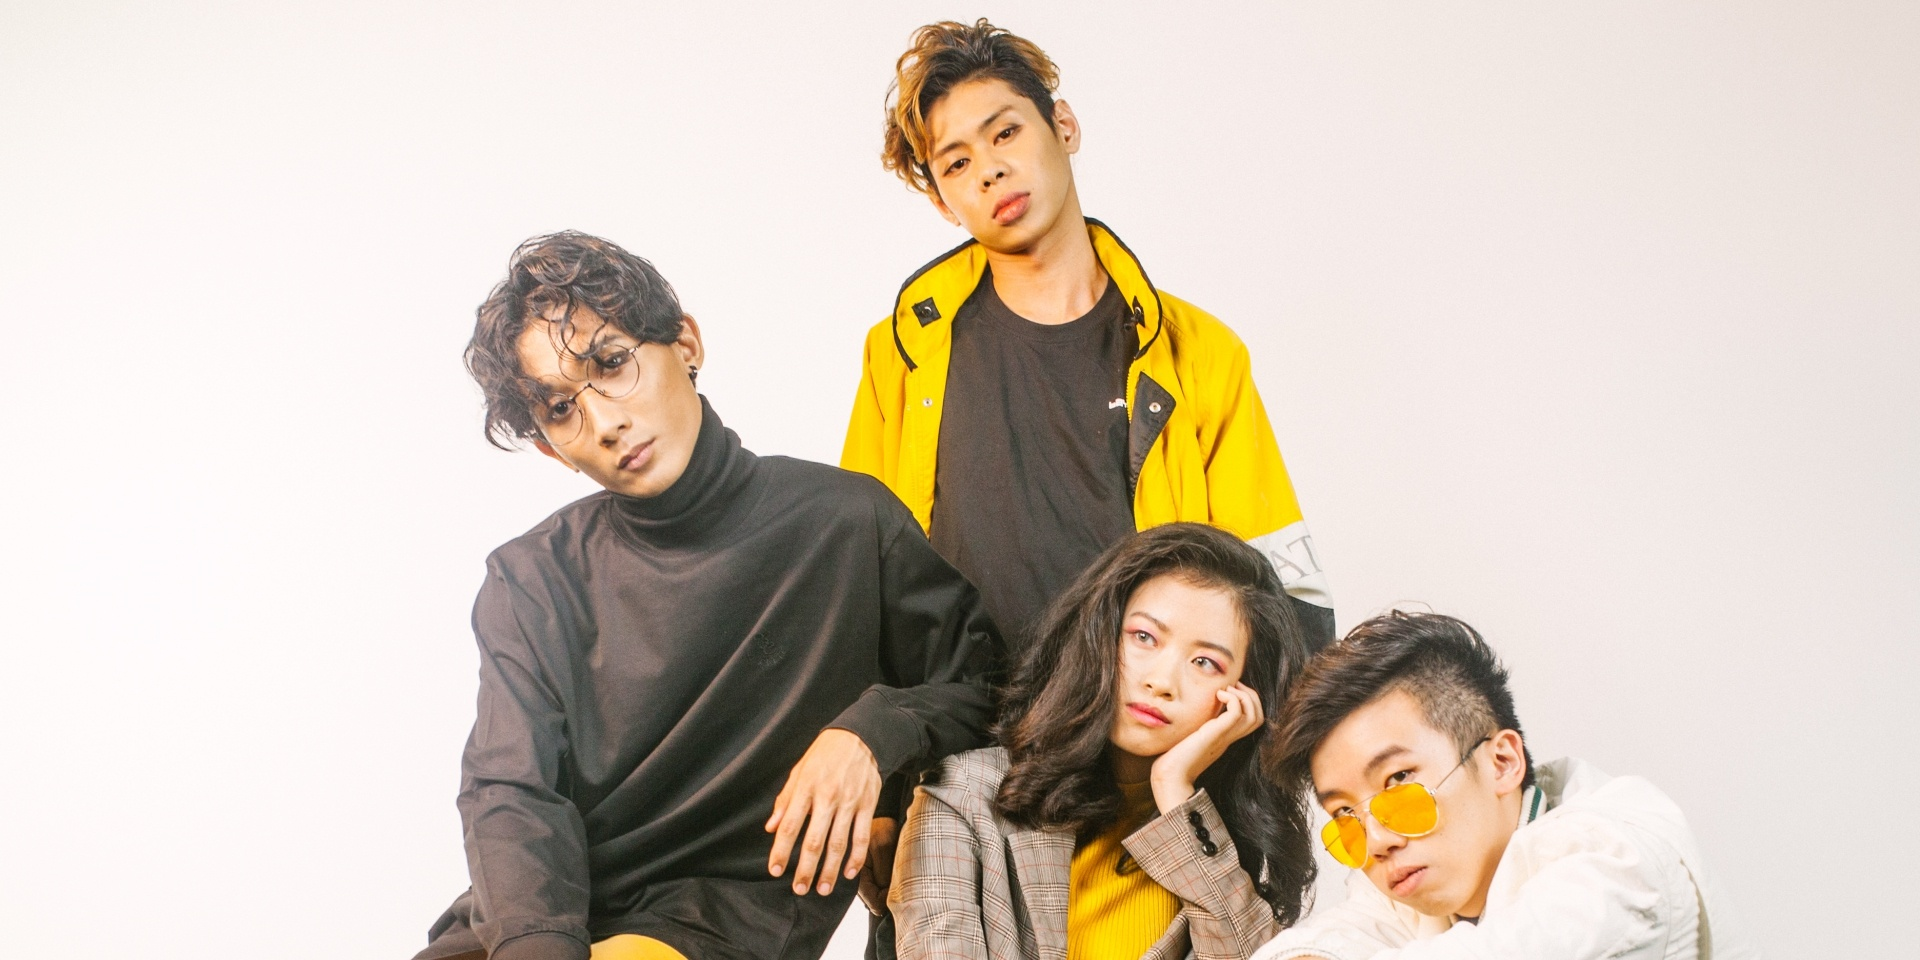 Disco Hue continues to update '80s funk and pop on new single, 'Right On Top (Back To You)' – listen